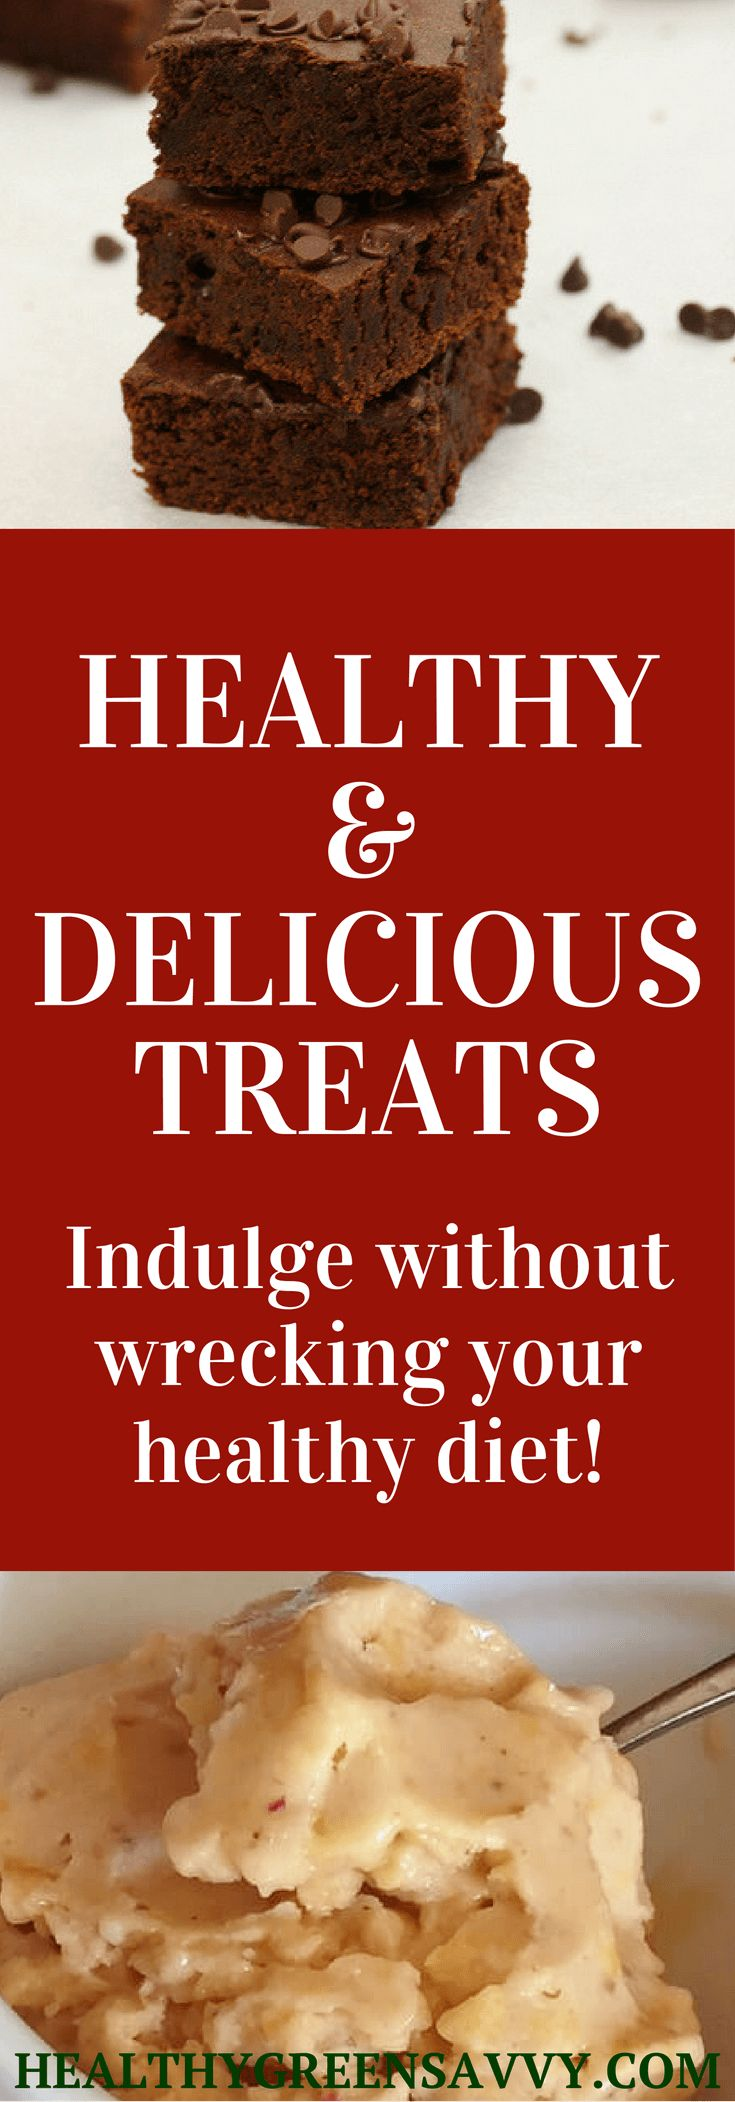 Healthy treats can help keep you on track with your healthy eating goals. Here are some delicious buthealthier ways to treat yourself! Click to read more or pin to save for later.